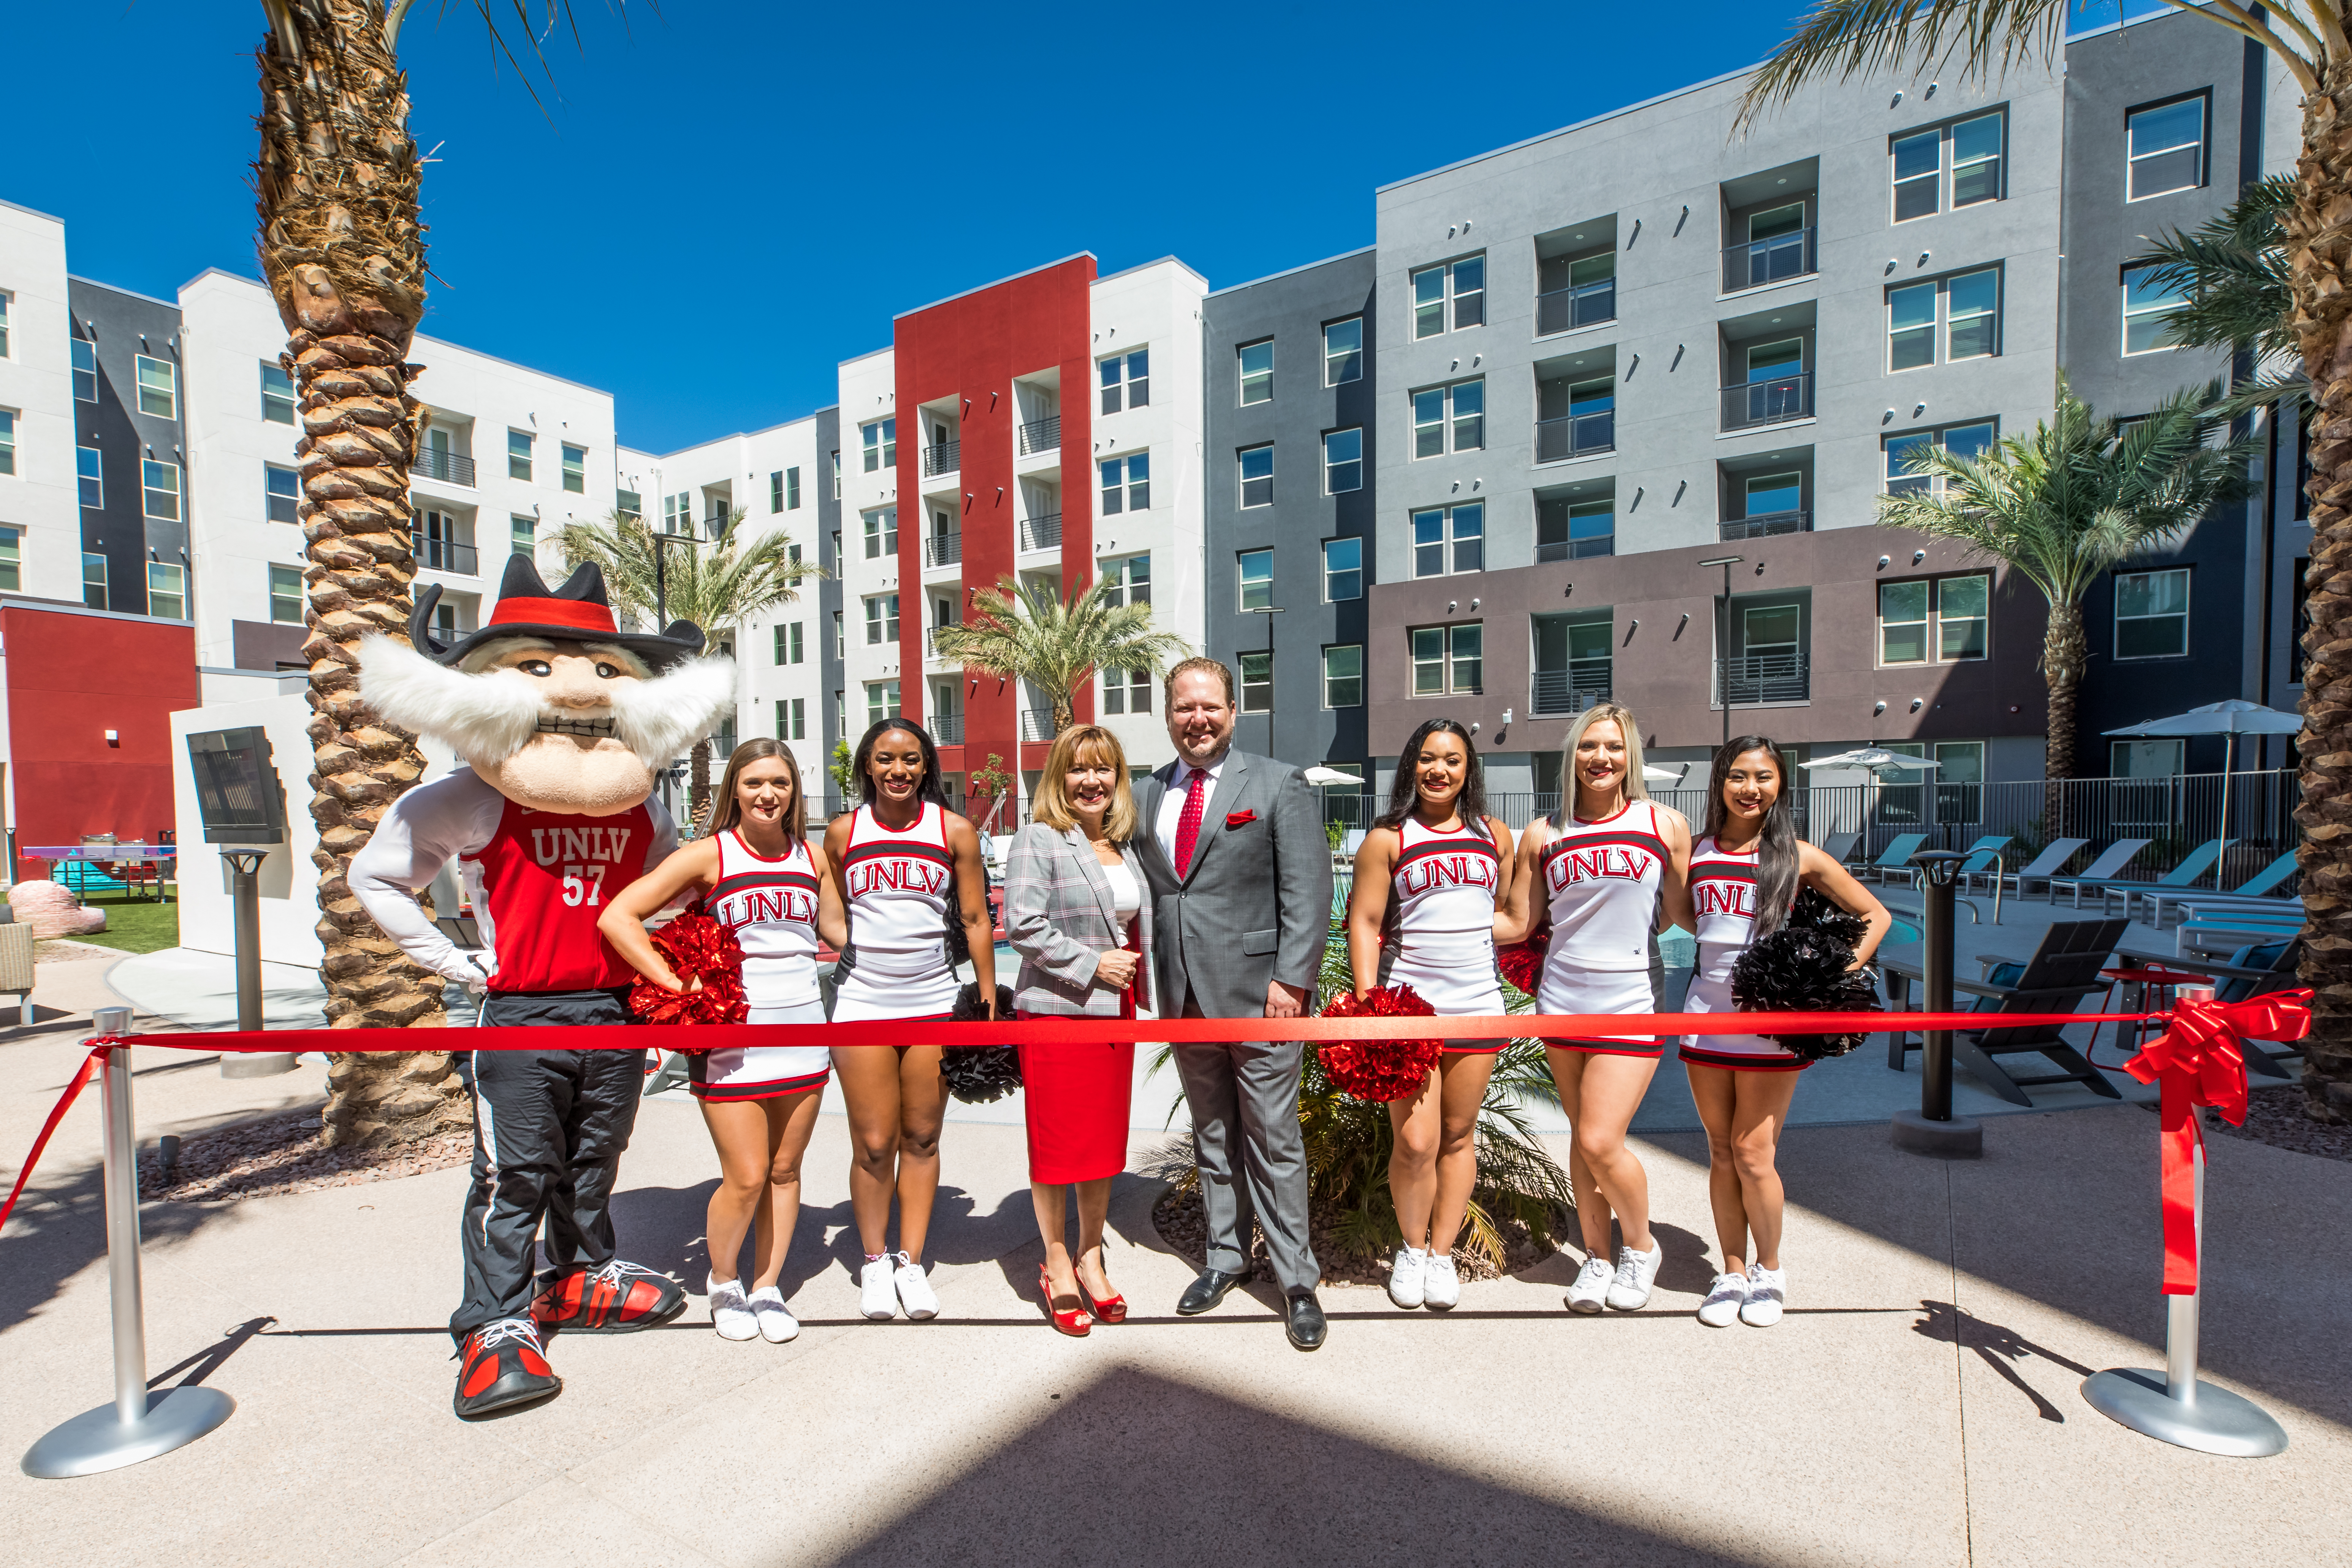 The Degree, new luxury campus apartments at UNLV